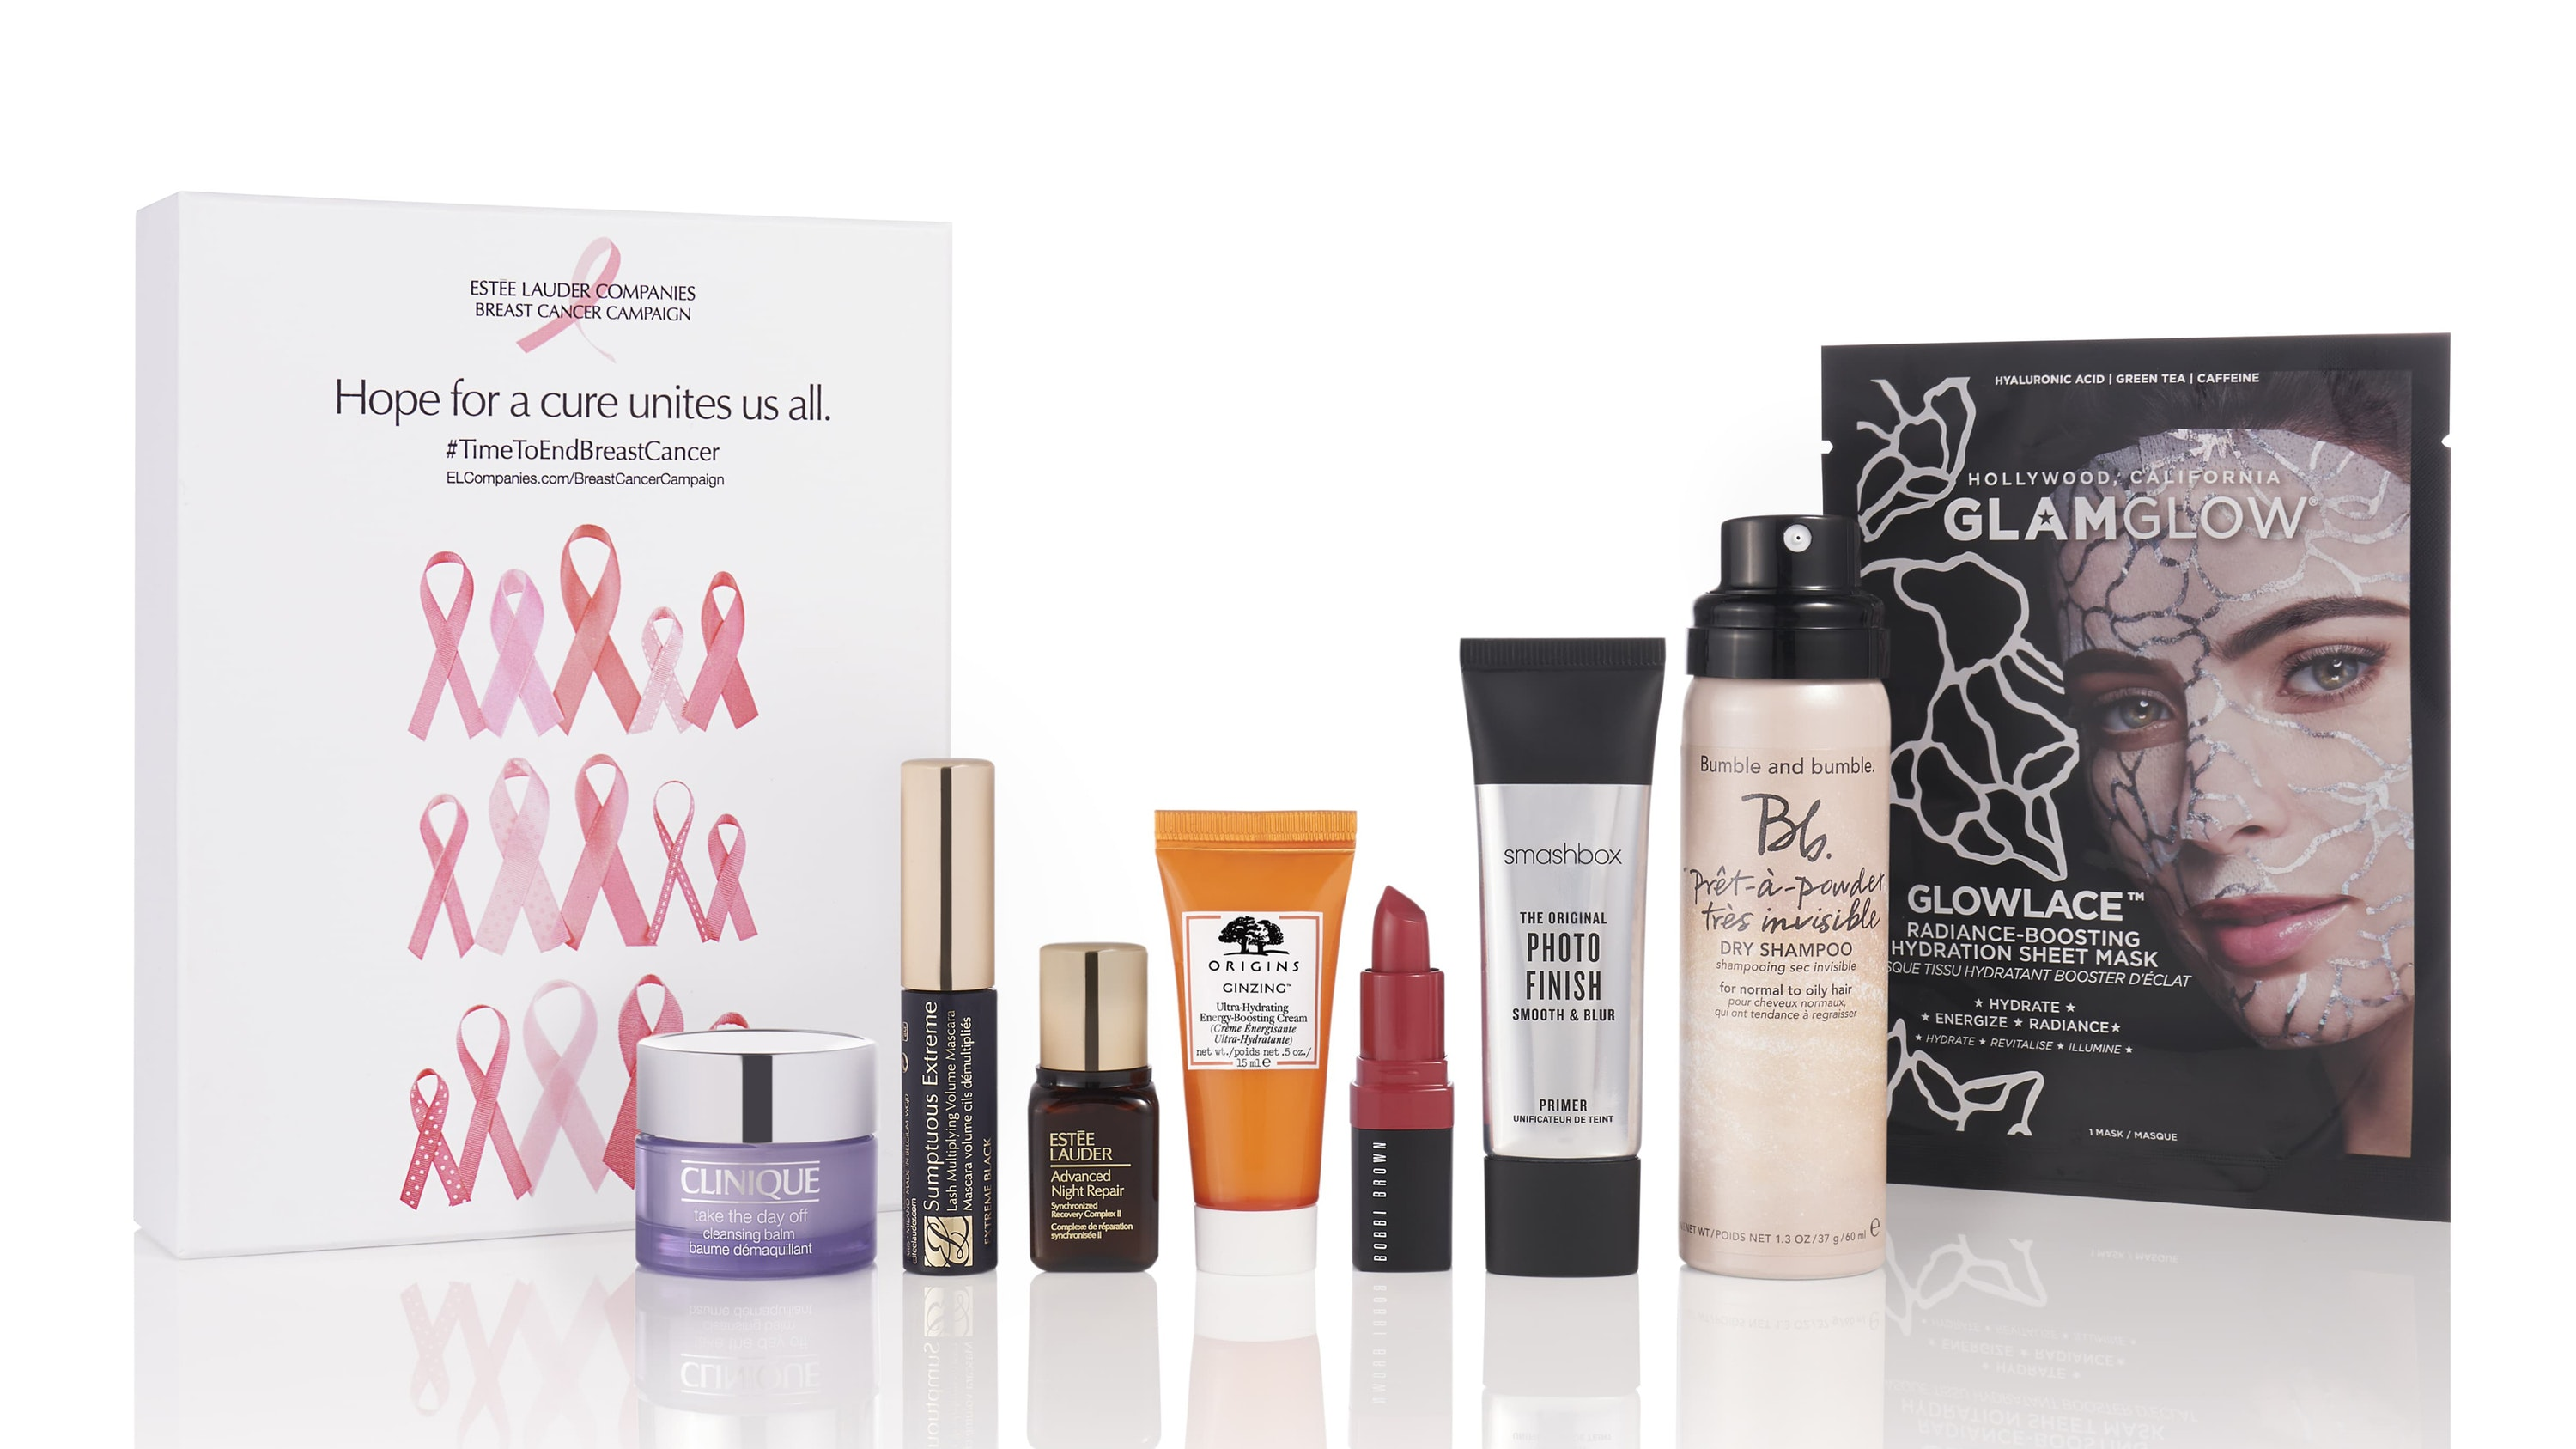 Estee Lauder Breast Cancer Campaign Beauty Box